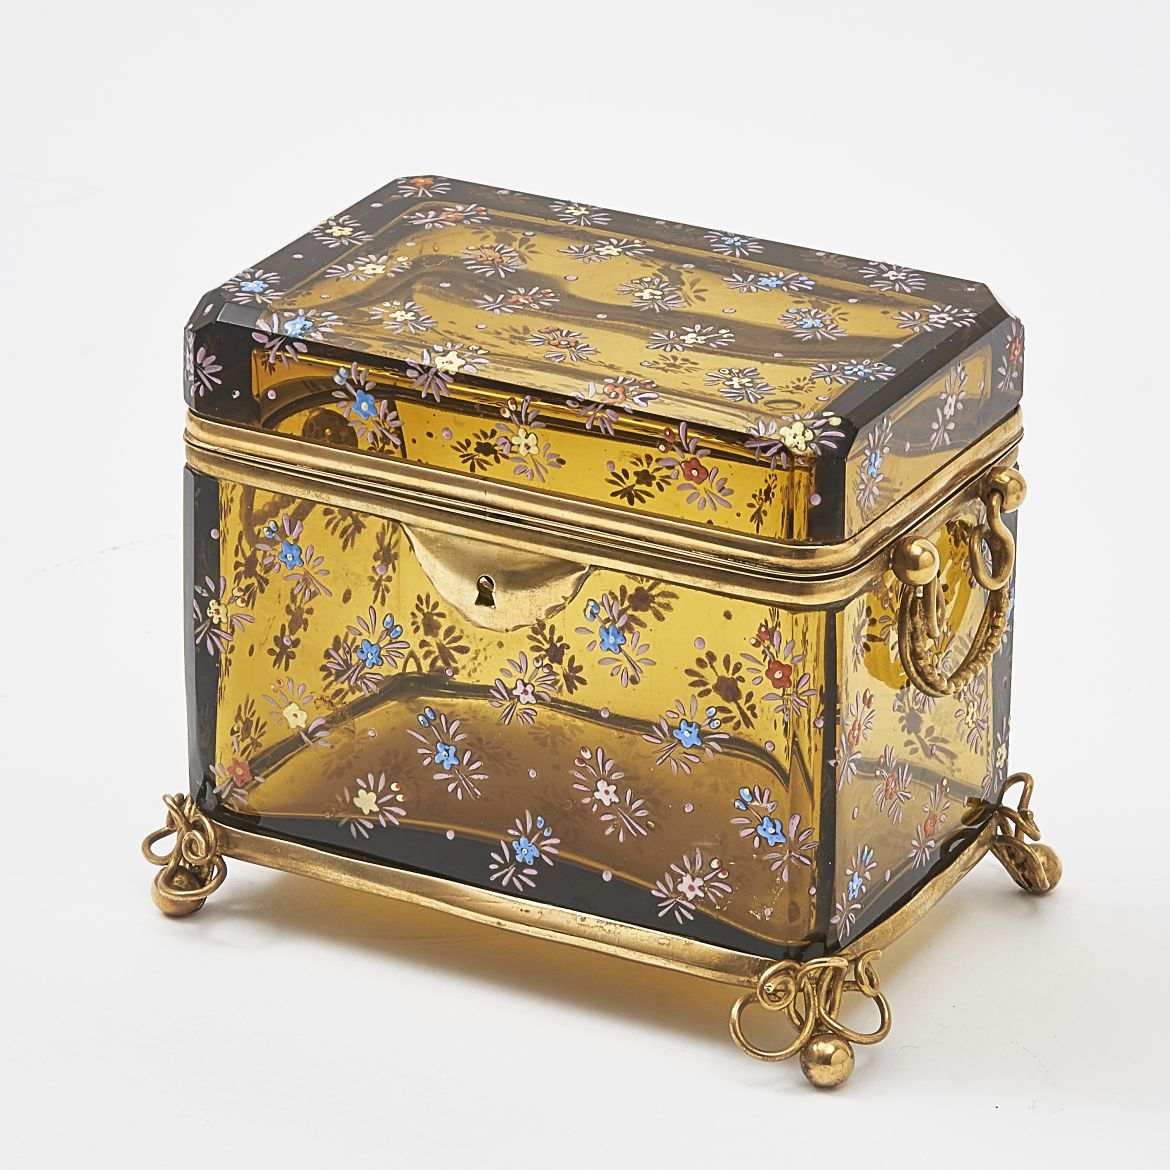 Amber Glass Box With Enamel Floral Decoration Attributed To Moser